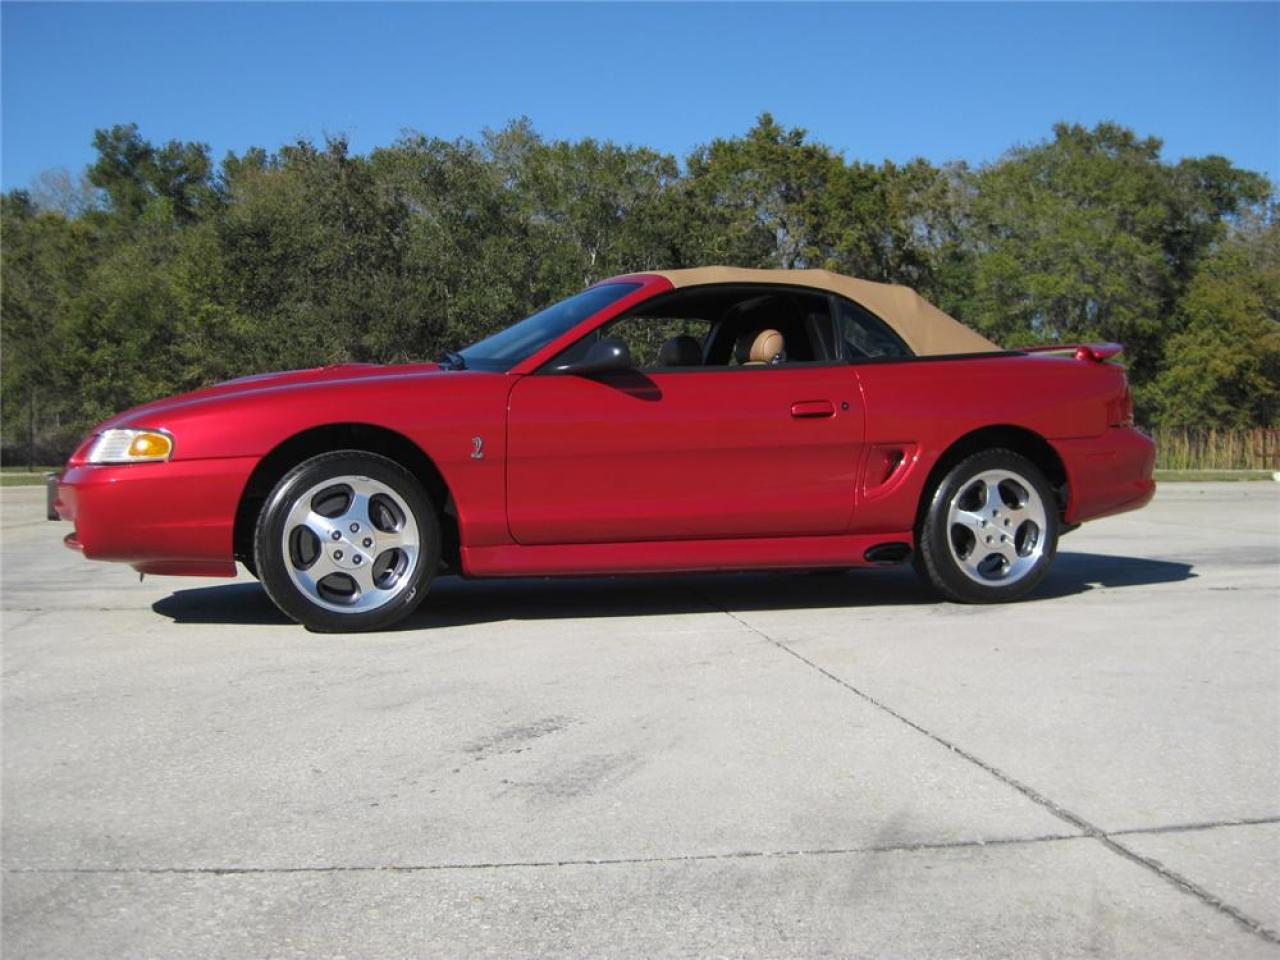 1996 ford mustang svt cobra information and photos zombiedrive. Black Bedroom Furniture Sets. Home Design Ideas